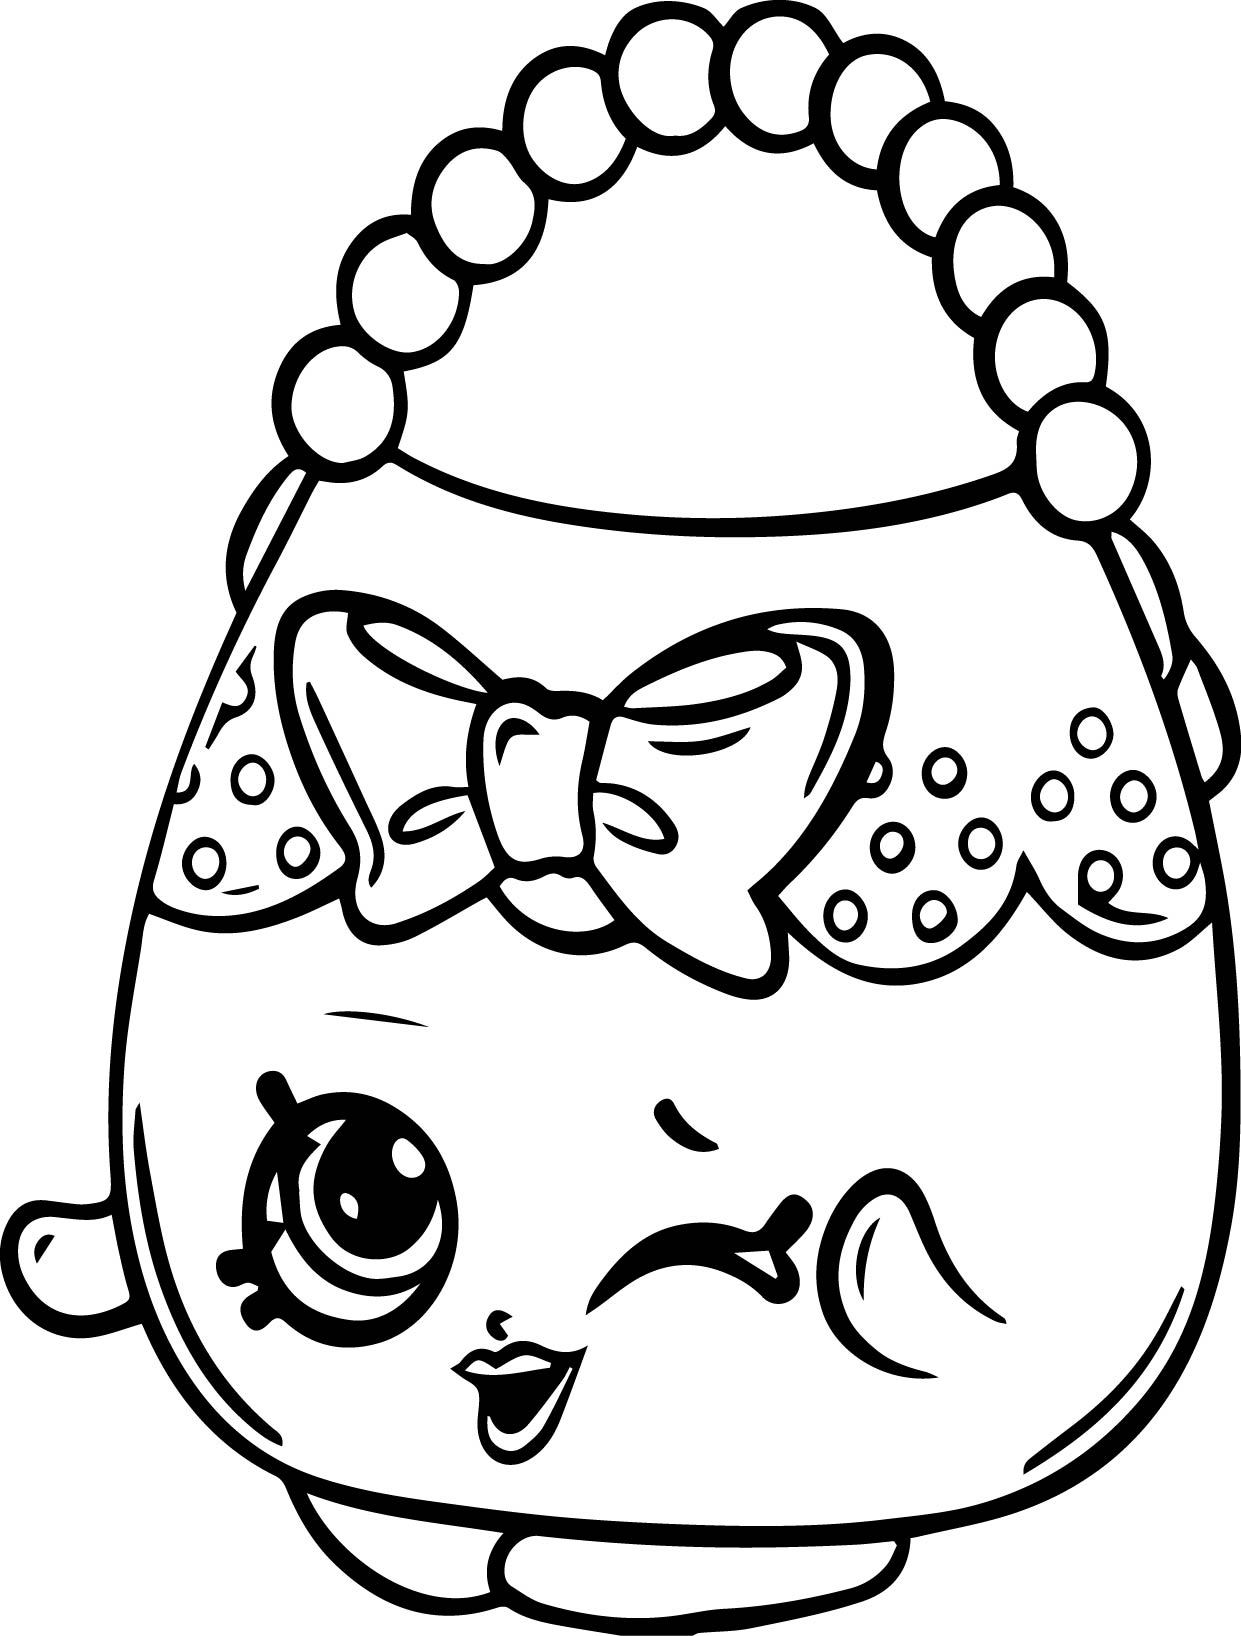 1241x1636 Awesome Bratz Cow Coloring Pages Hellokidscom Image Of Lipstick